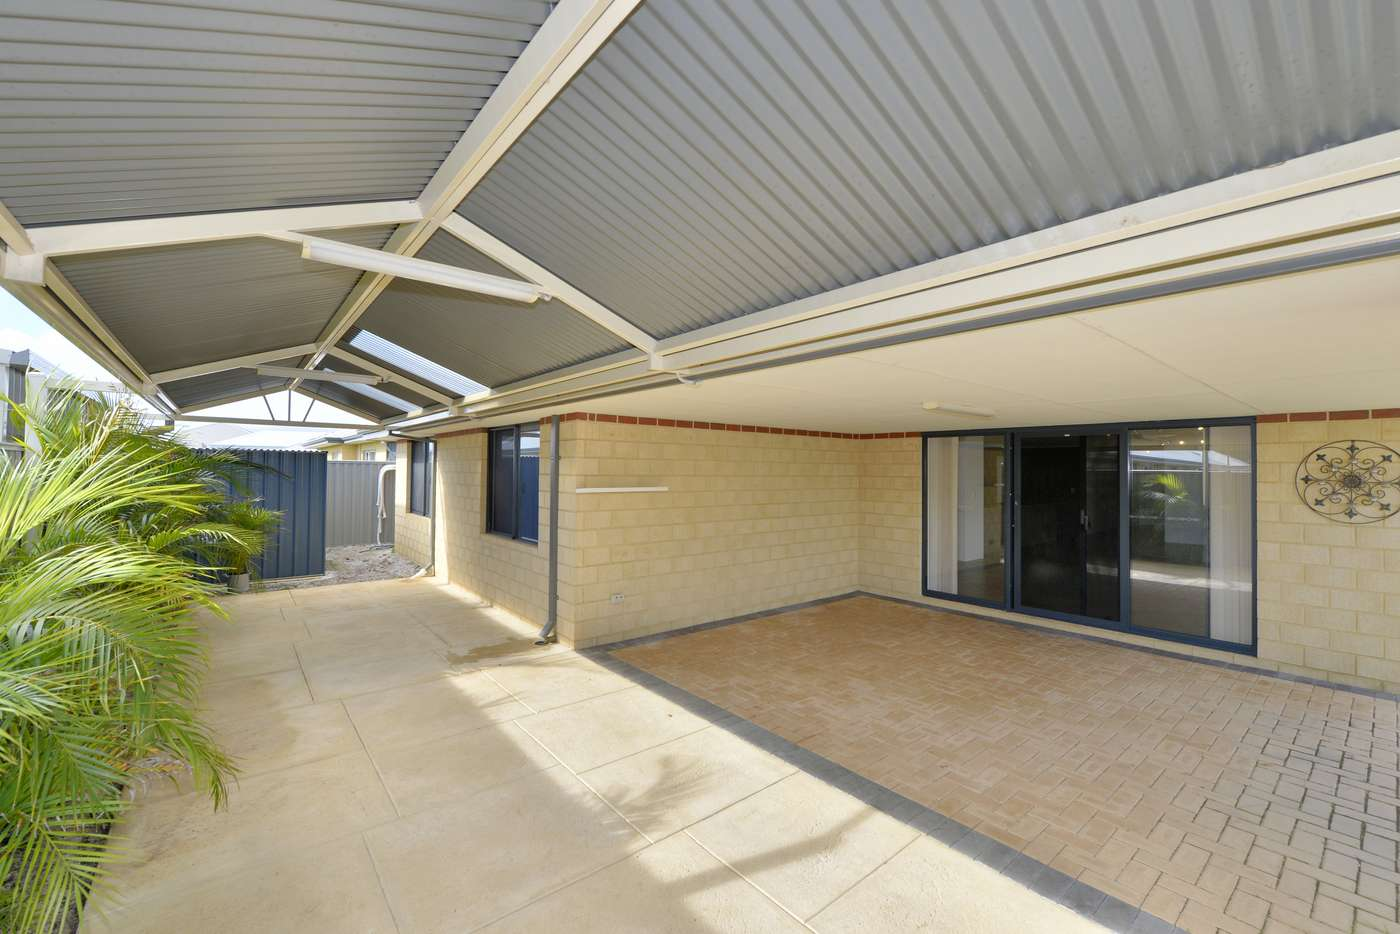 Seventh view of Homely house listing, 86 Countess Circuit, South Yunderup WA 6208